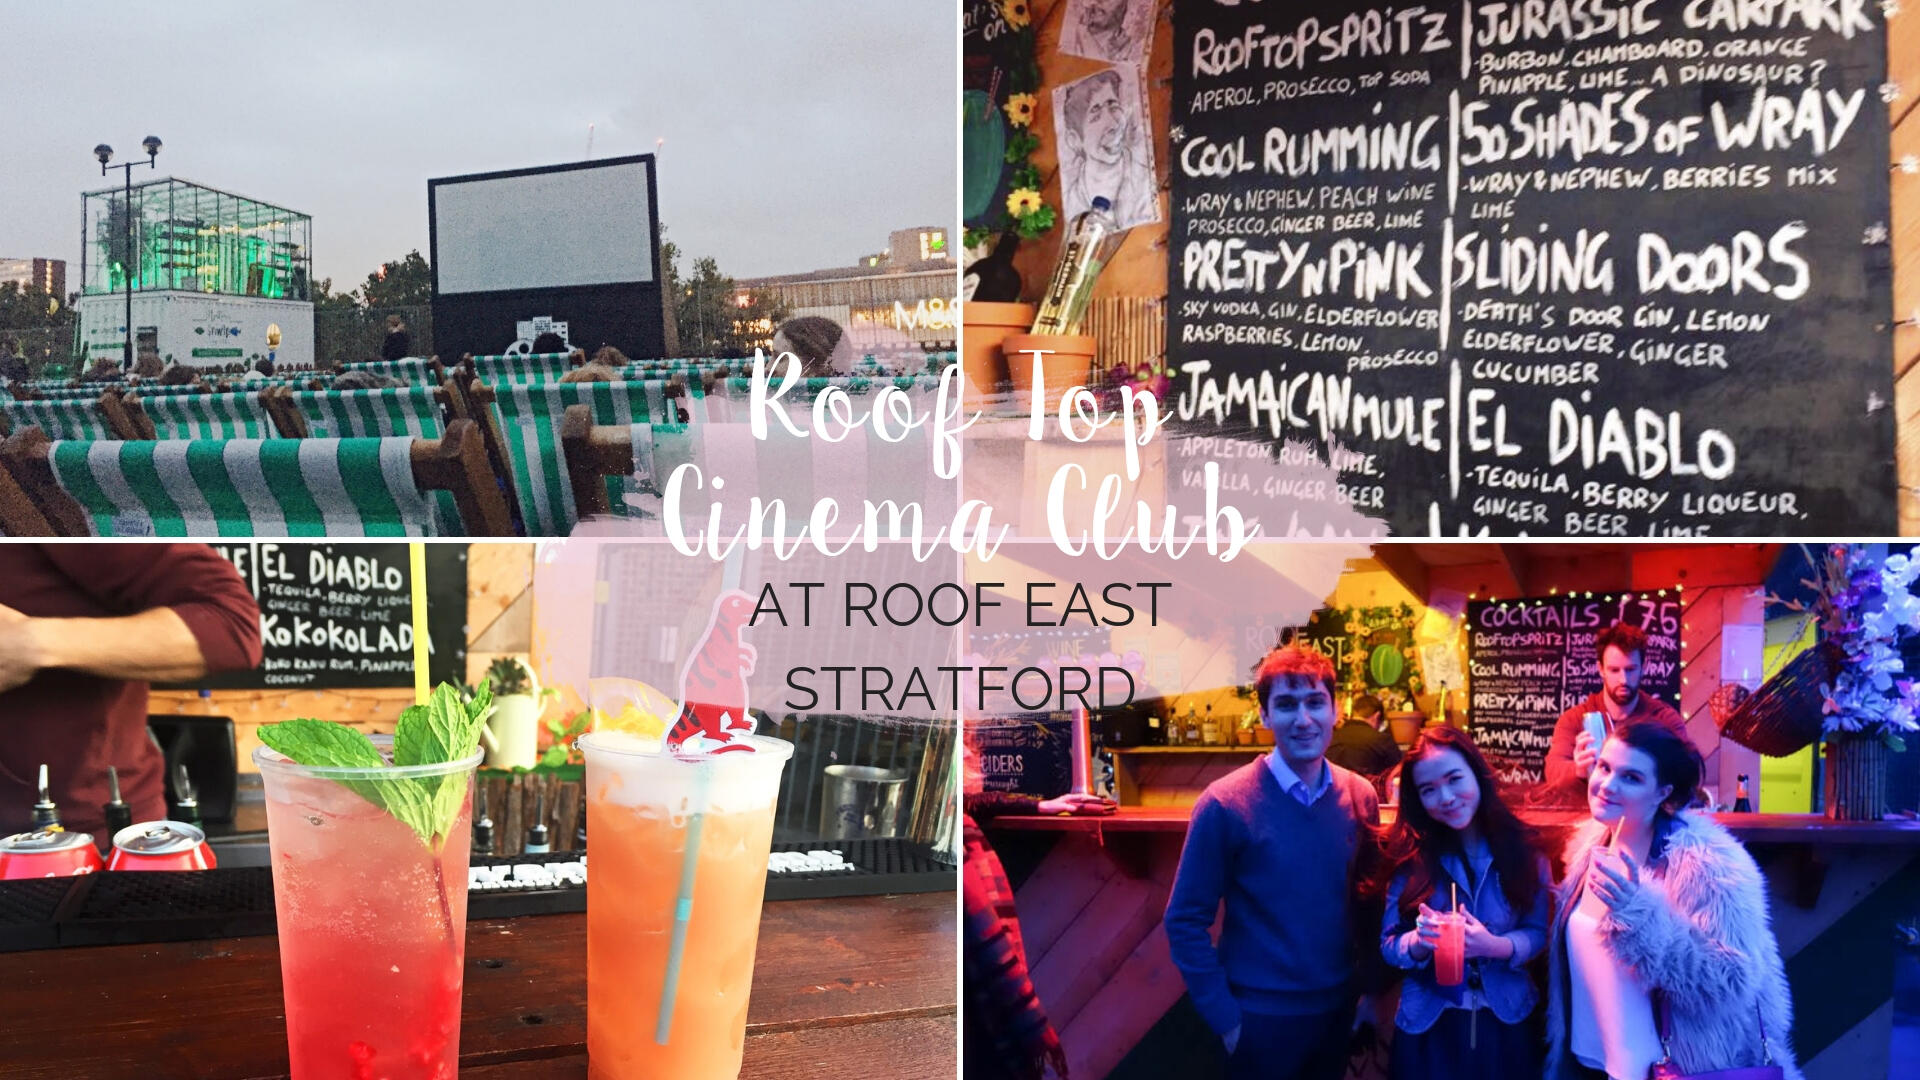 Roof Top Cinema Club at Roof East, Stratford || London